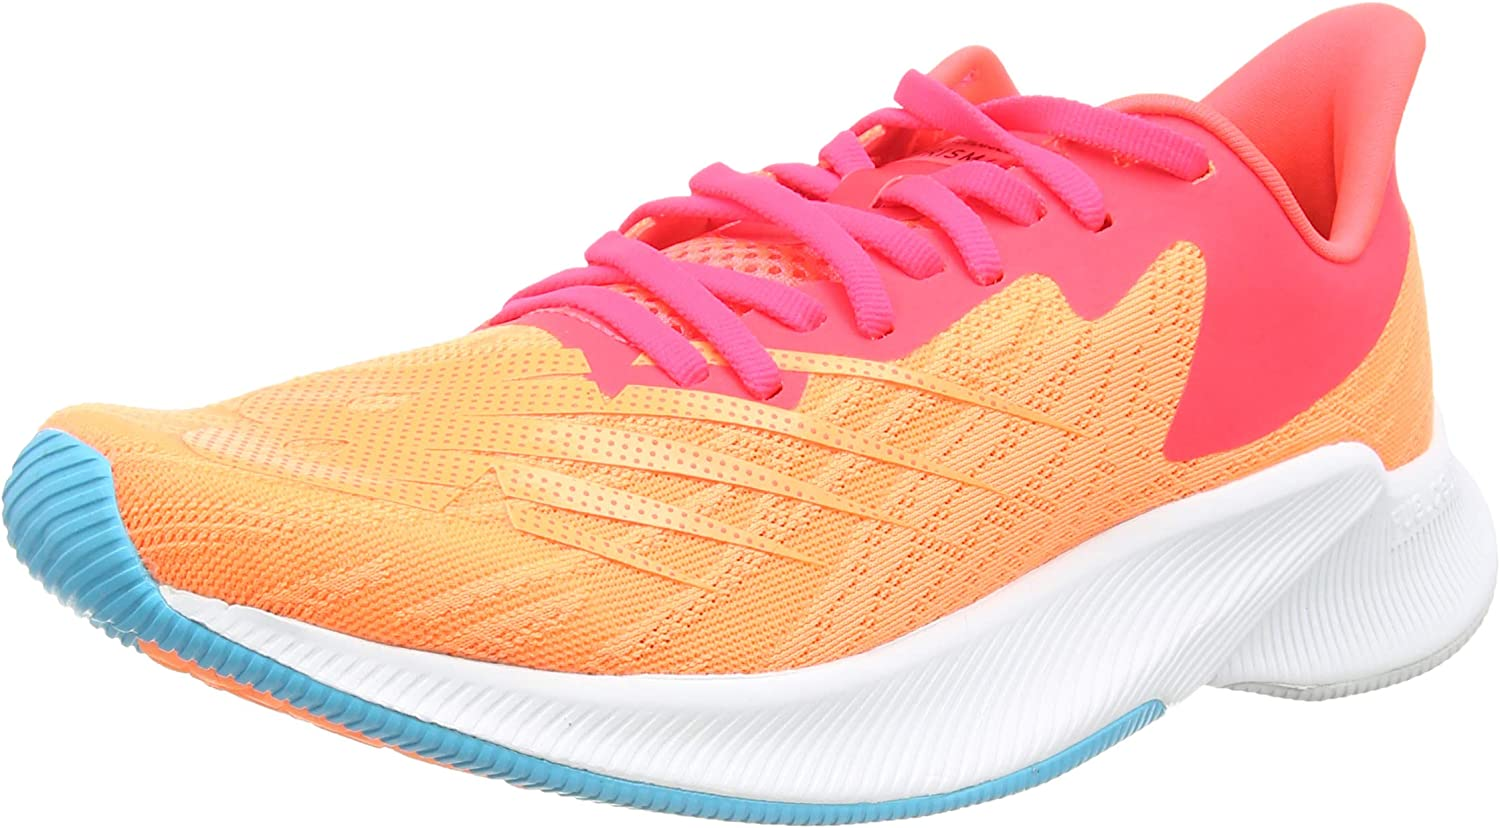 Sales of SALE items from new works New Balance Women's FuelCell Running V1 Dedication Shoe Prism